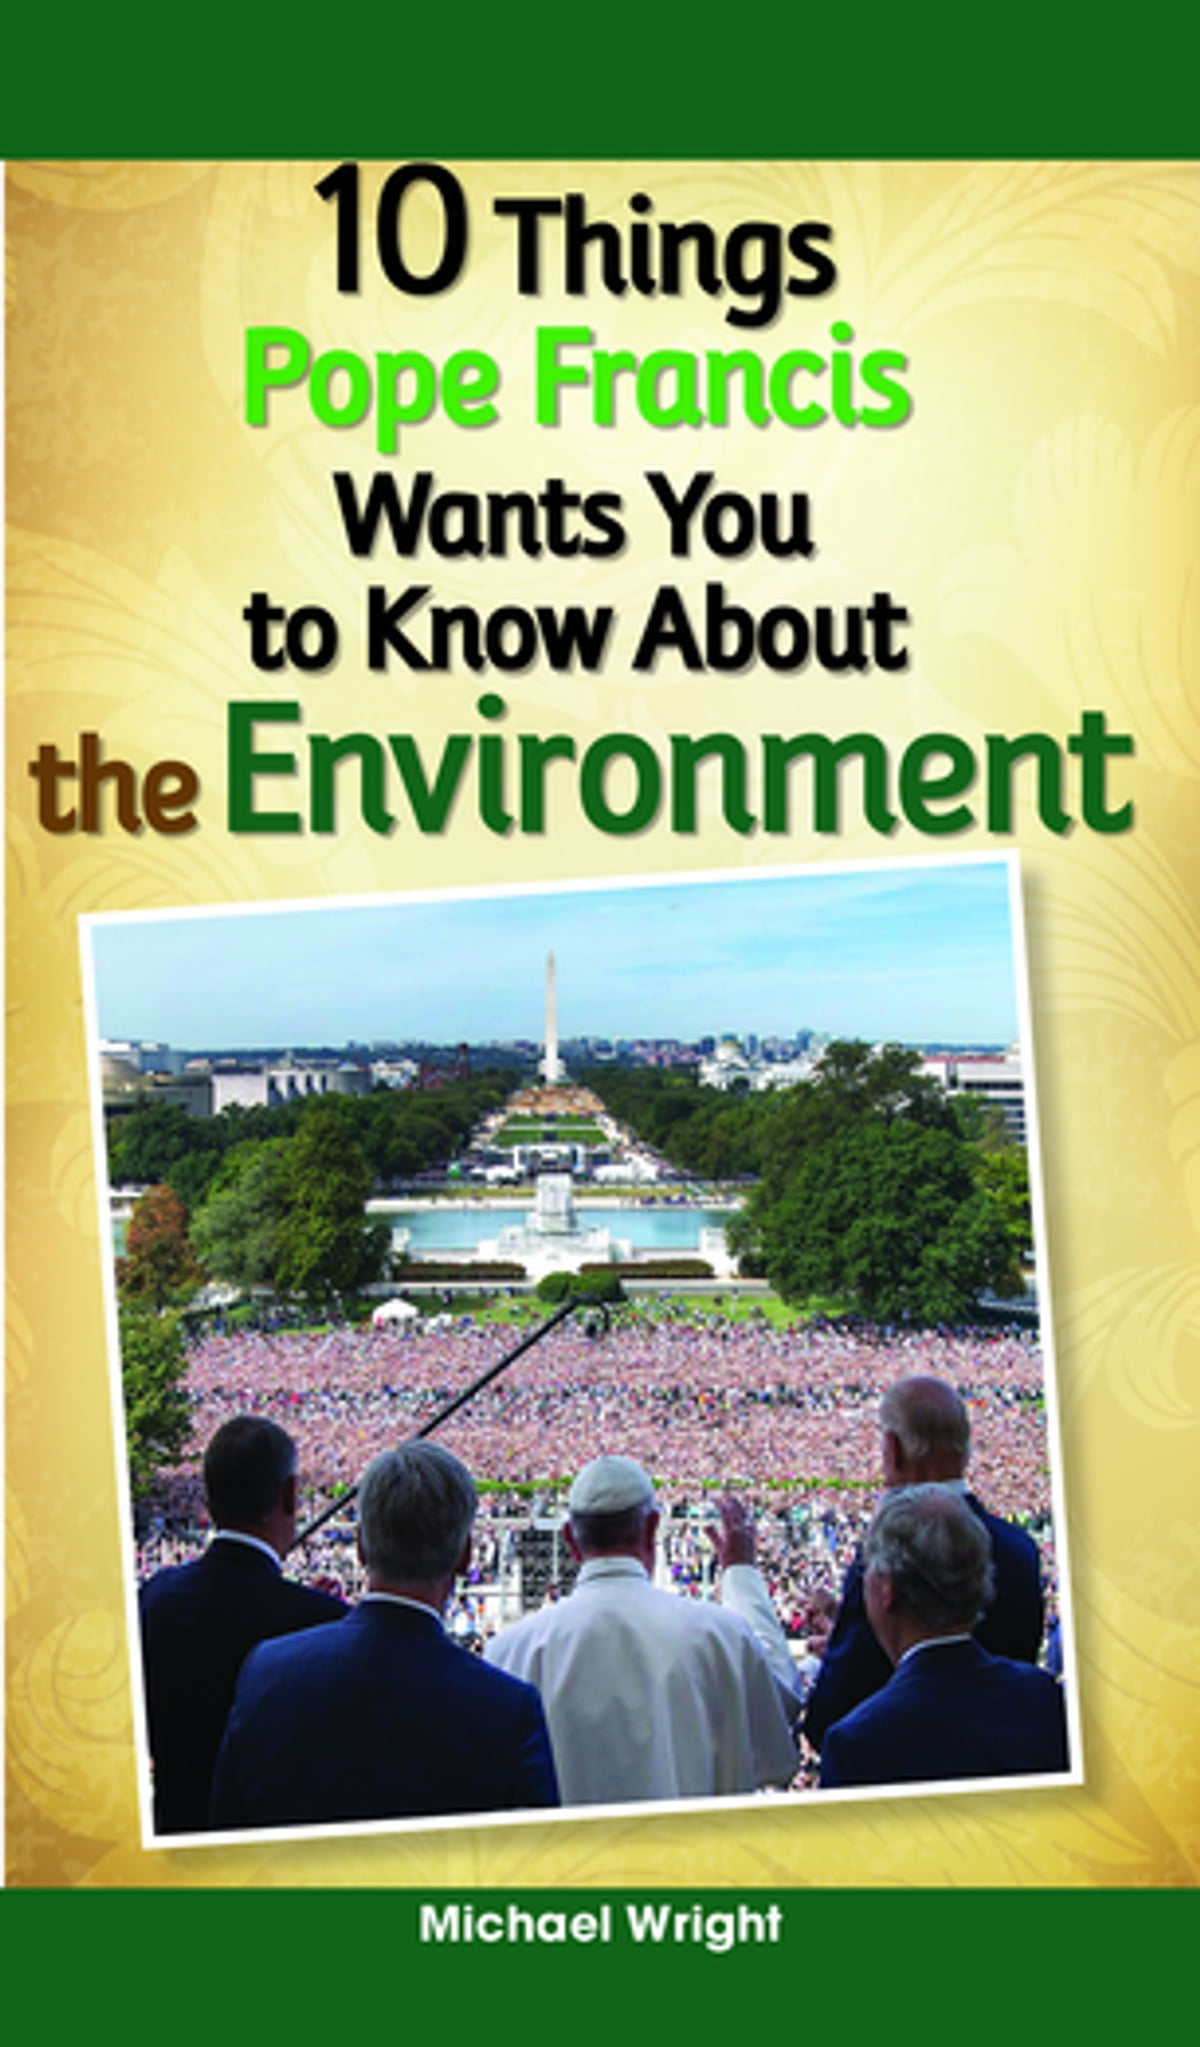 10 Things Pope Francis Wants You to Know About the Environment eBook by  Michael Wright - 9780764871238 | Rakuten Kobo